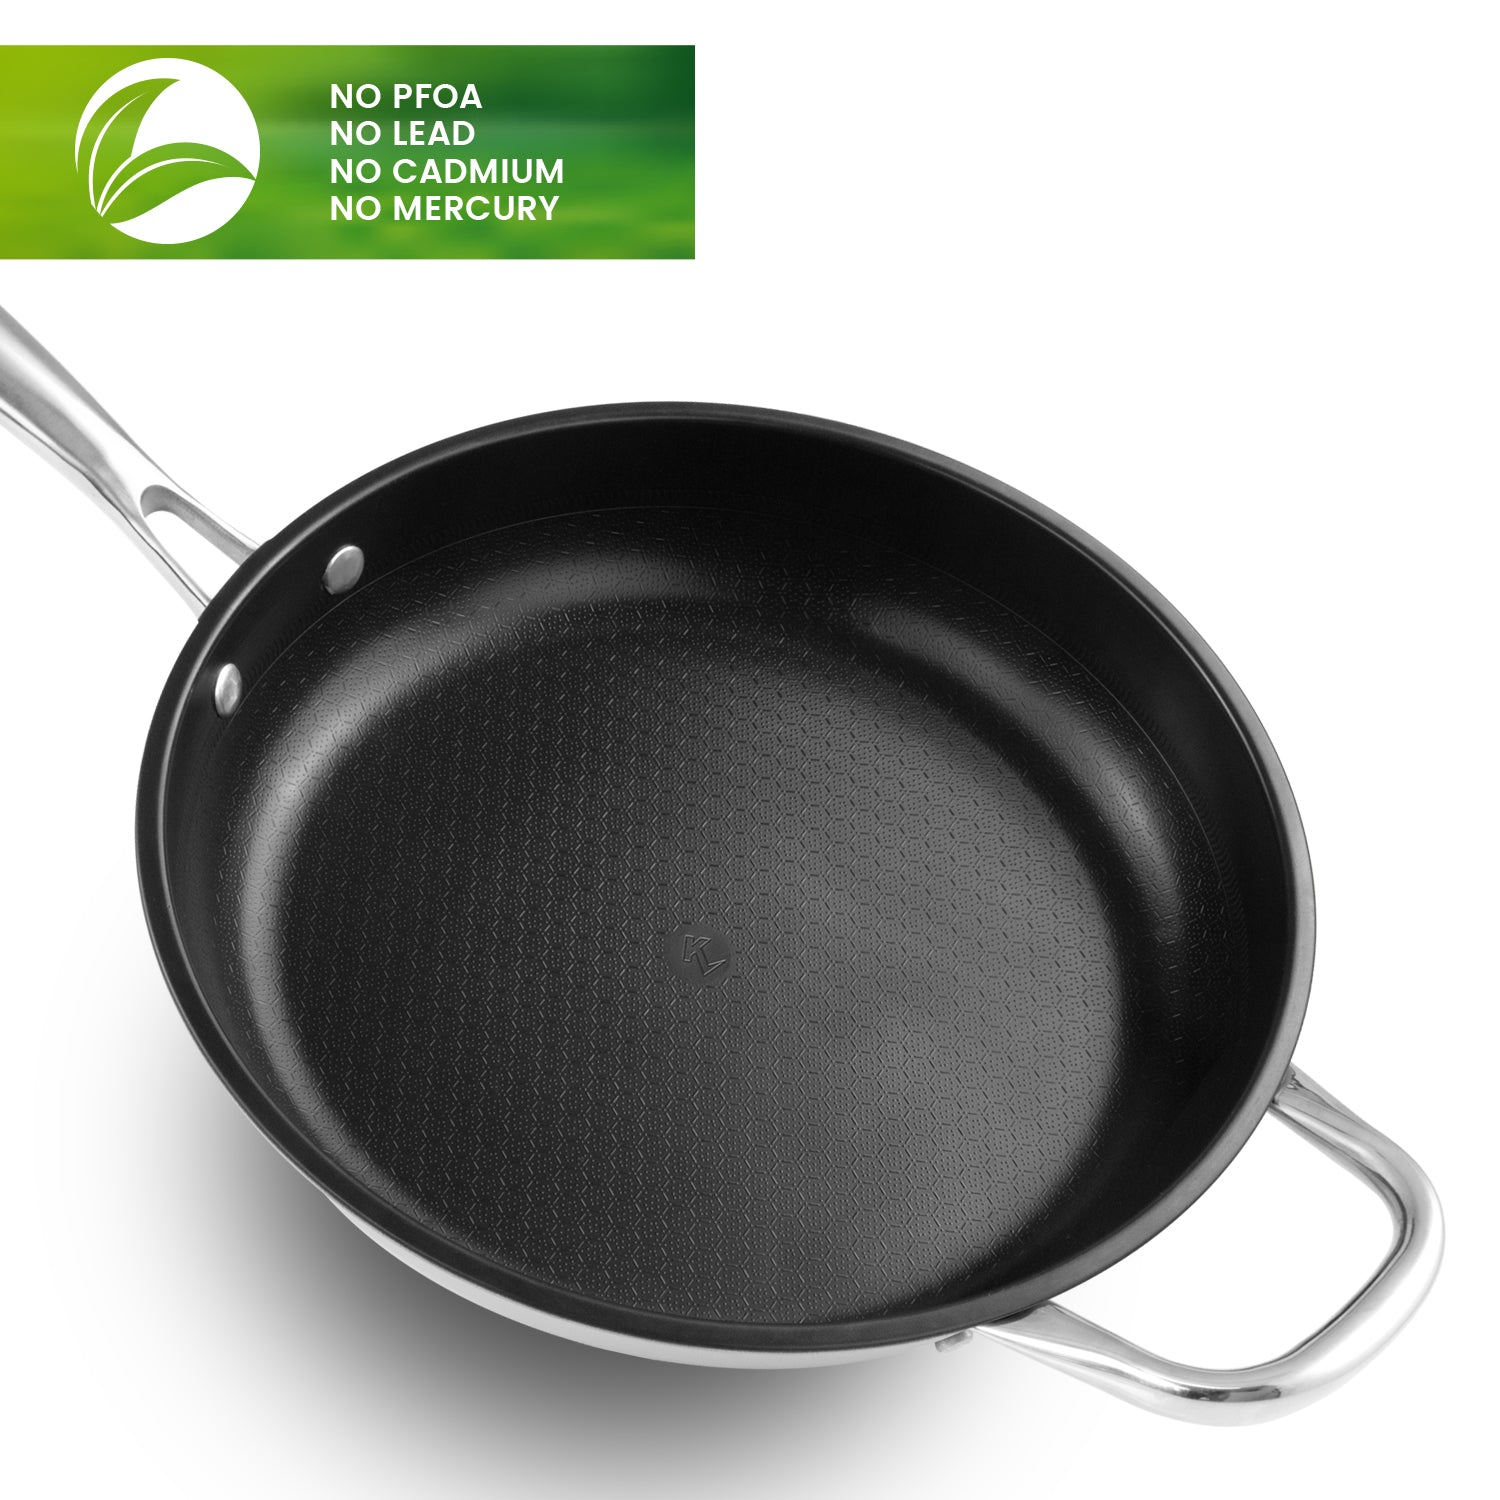 Premium Non-Stick Perfect Pro Pan - Double Offer!